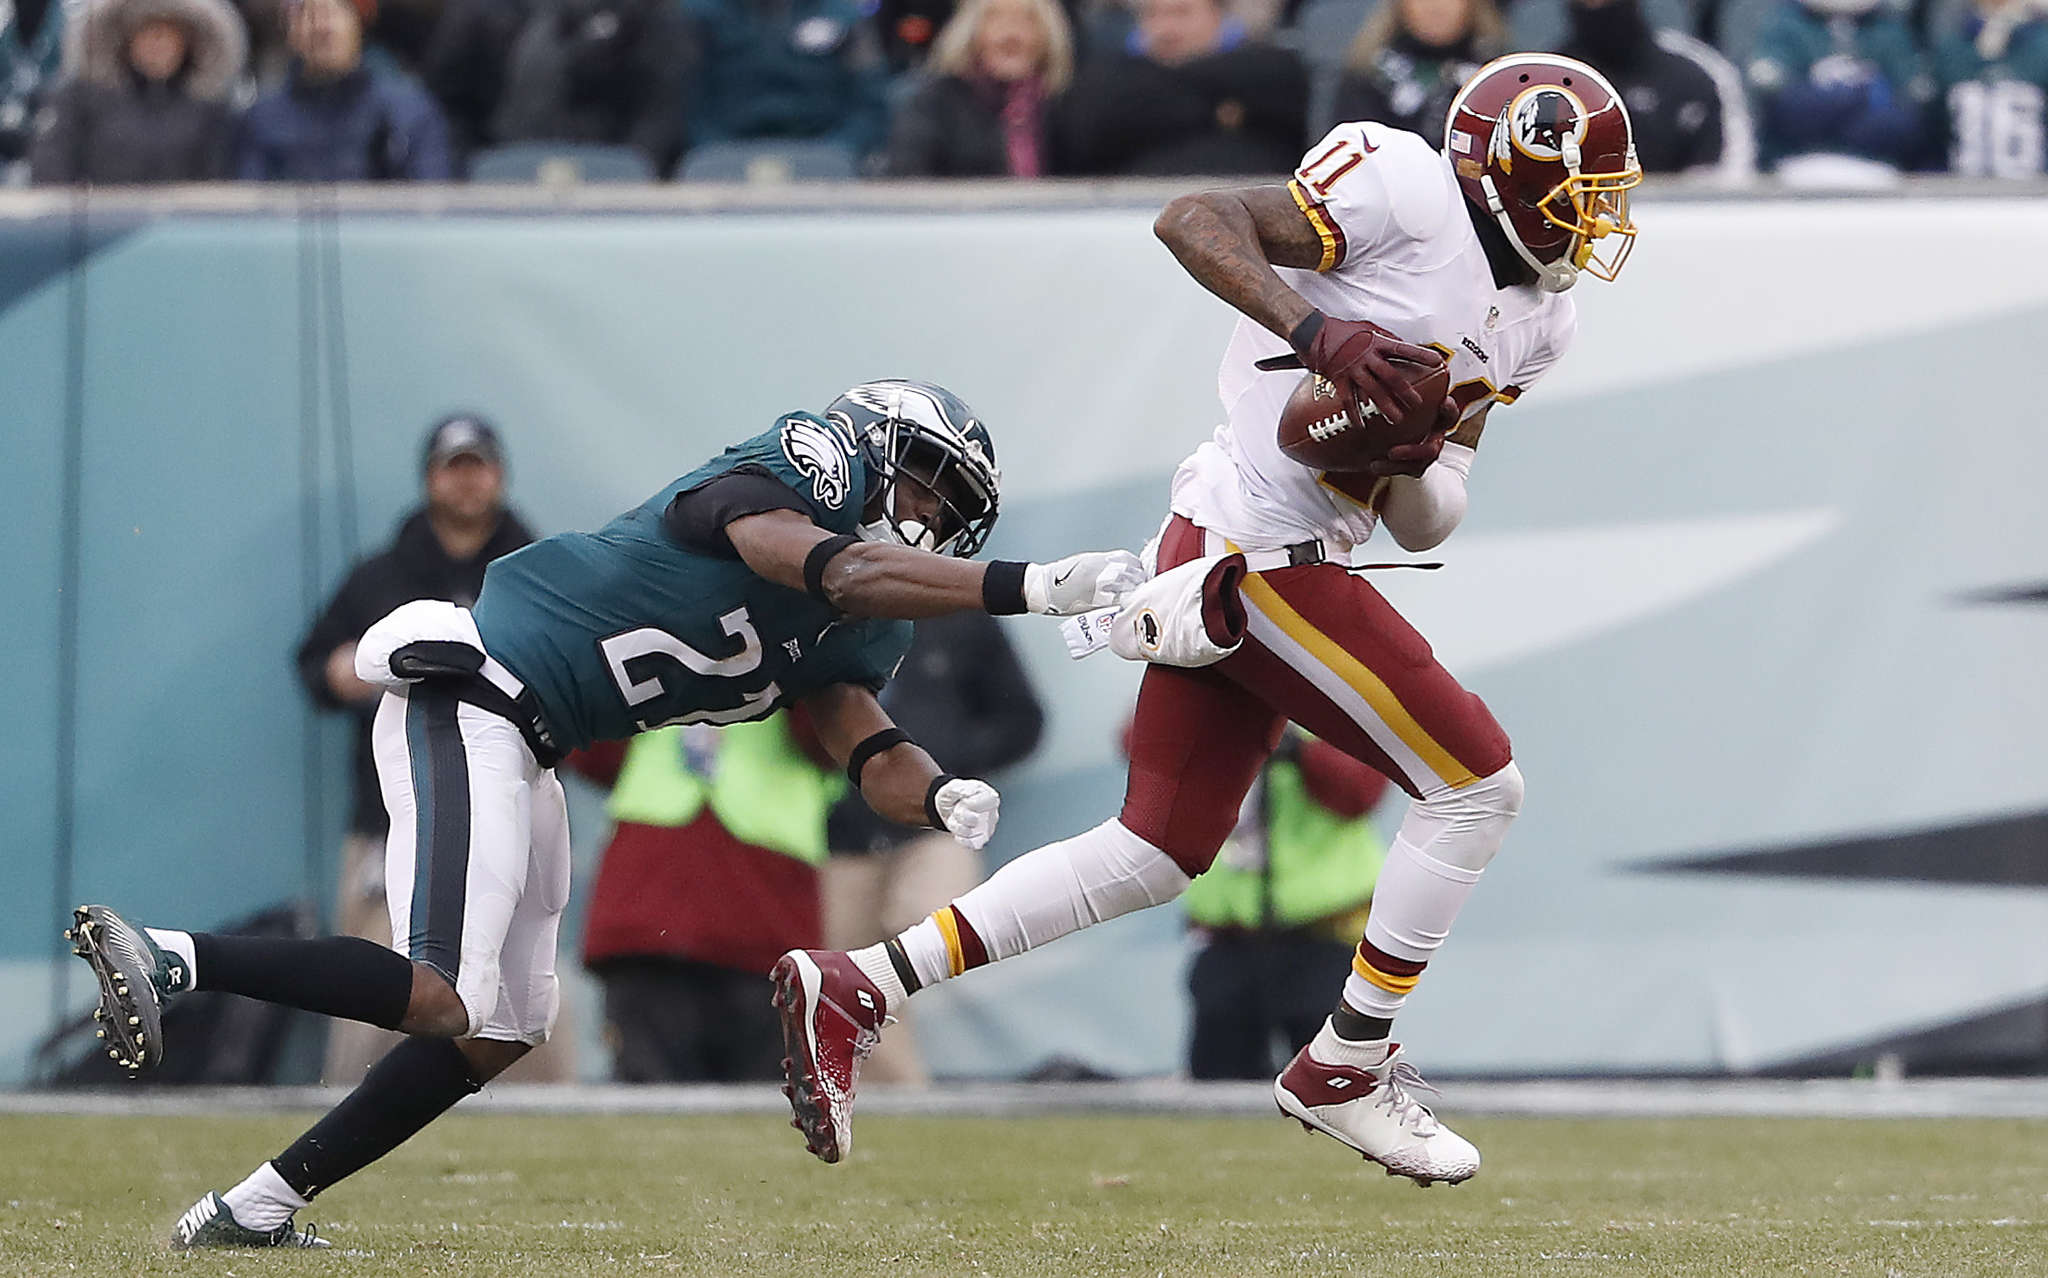 Redskins´ DeSean Jackson beats Eagles´ Leodis McKelvin on 80-yard touchdown pass in third quarter. DAVID MAIALETTI / Staff Photographer